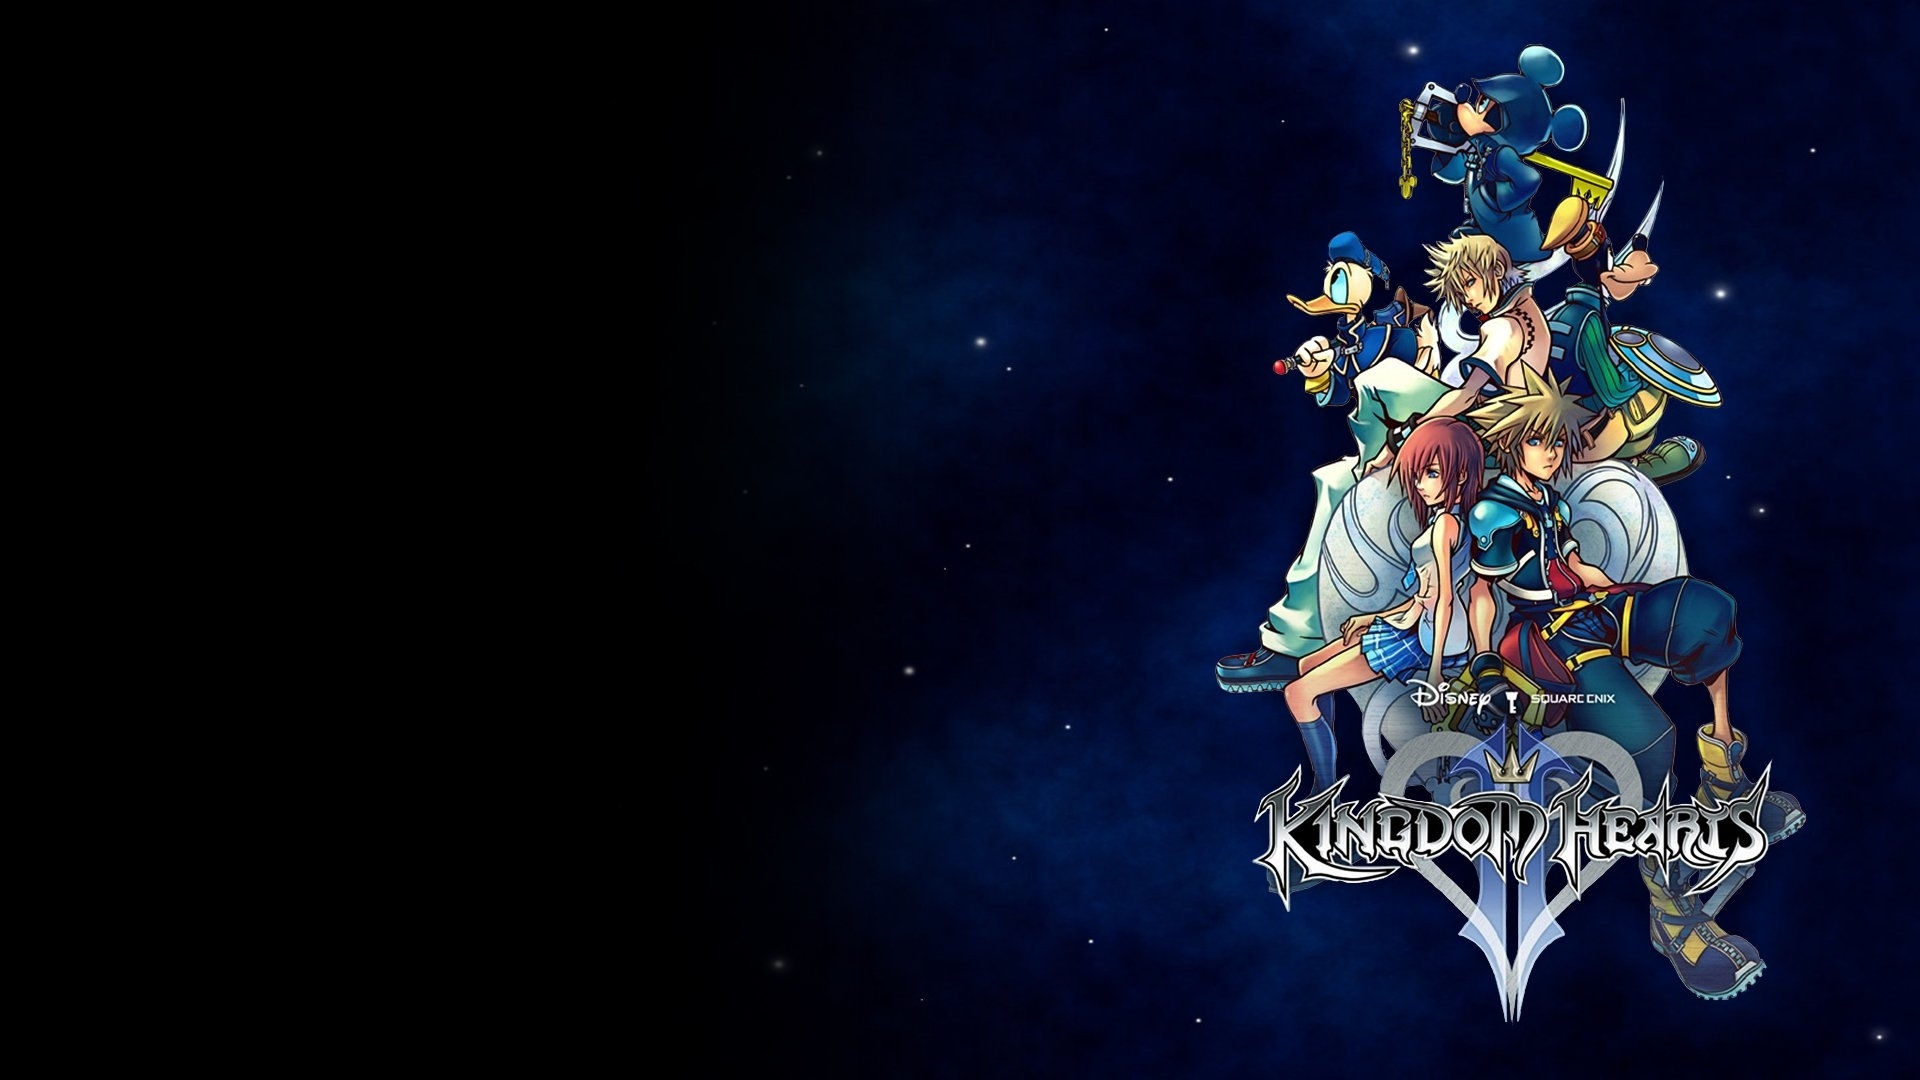 10 Top Kingdom Hearts 2 Wallpaper FULL HD 1920×1080 For PC Background